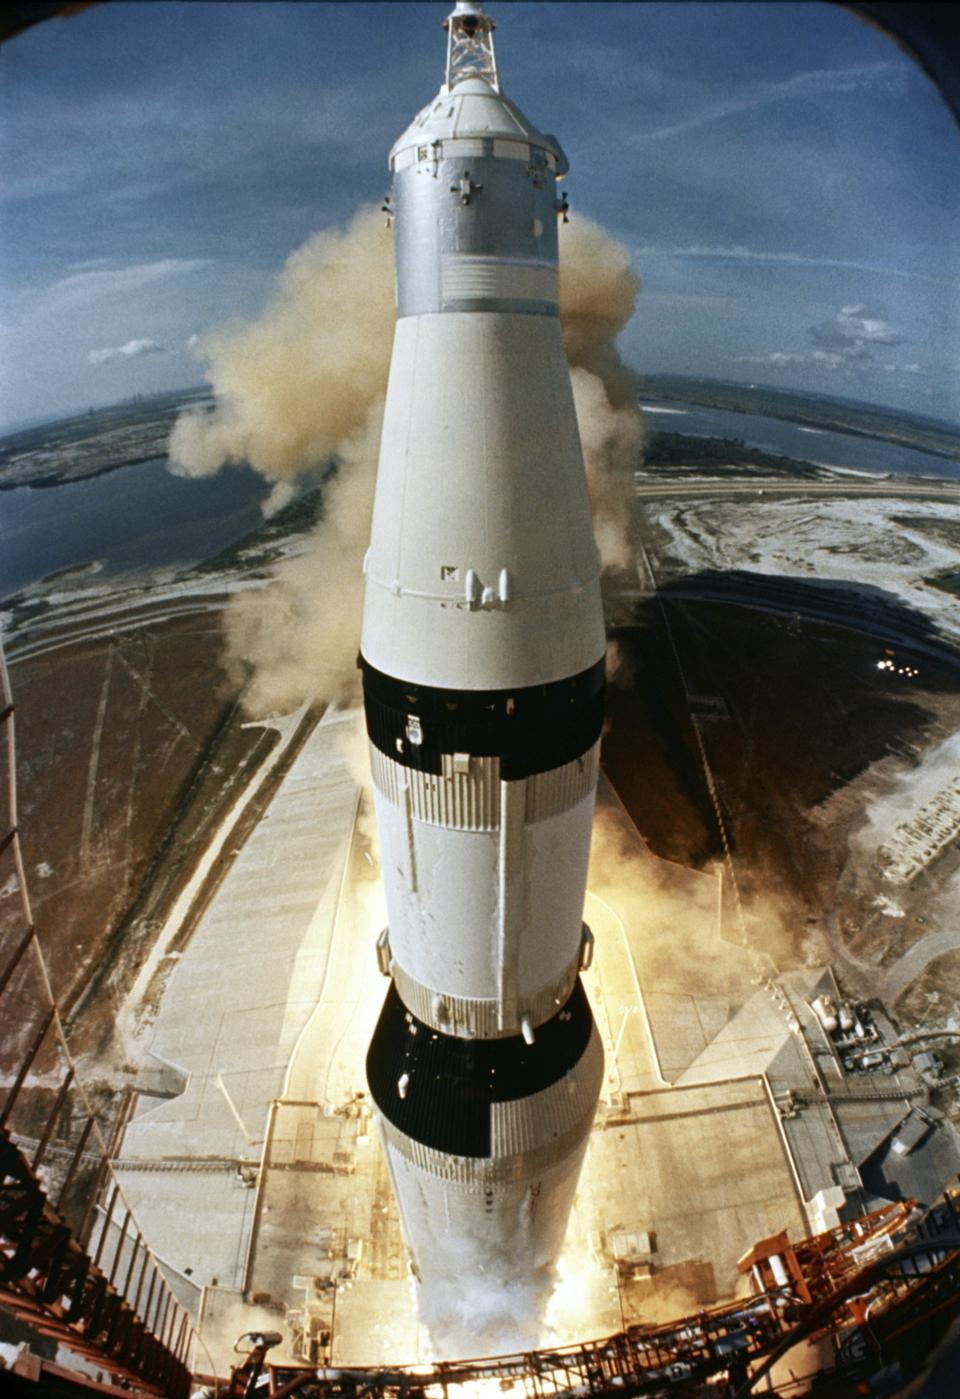 The liftoff of a Saturn V rocket on its way to the Moon.